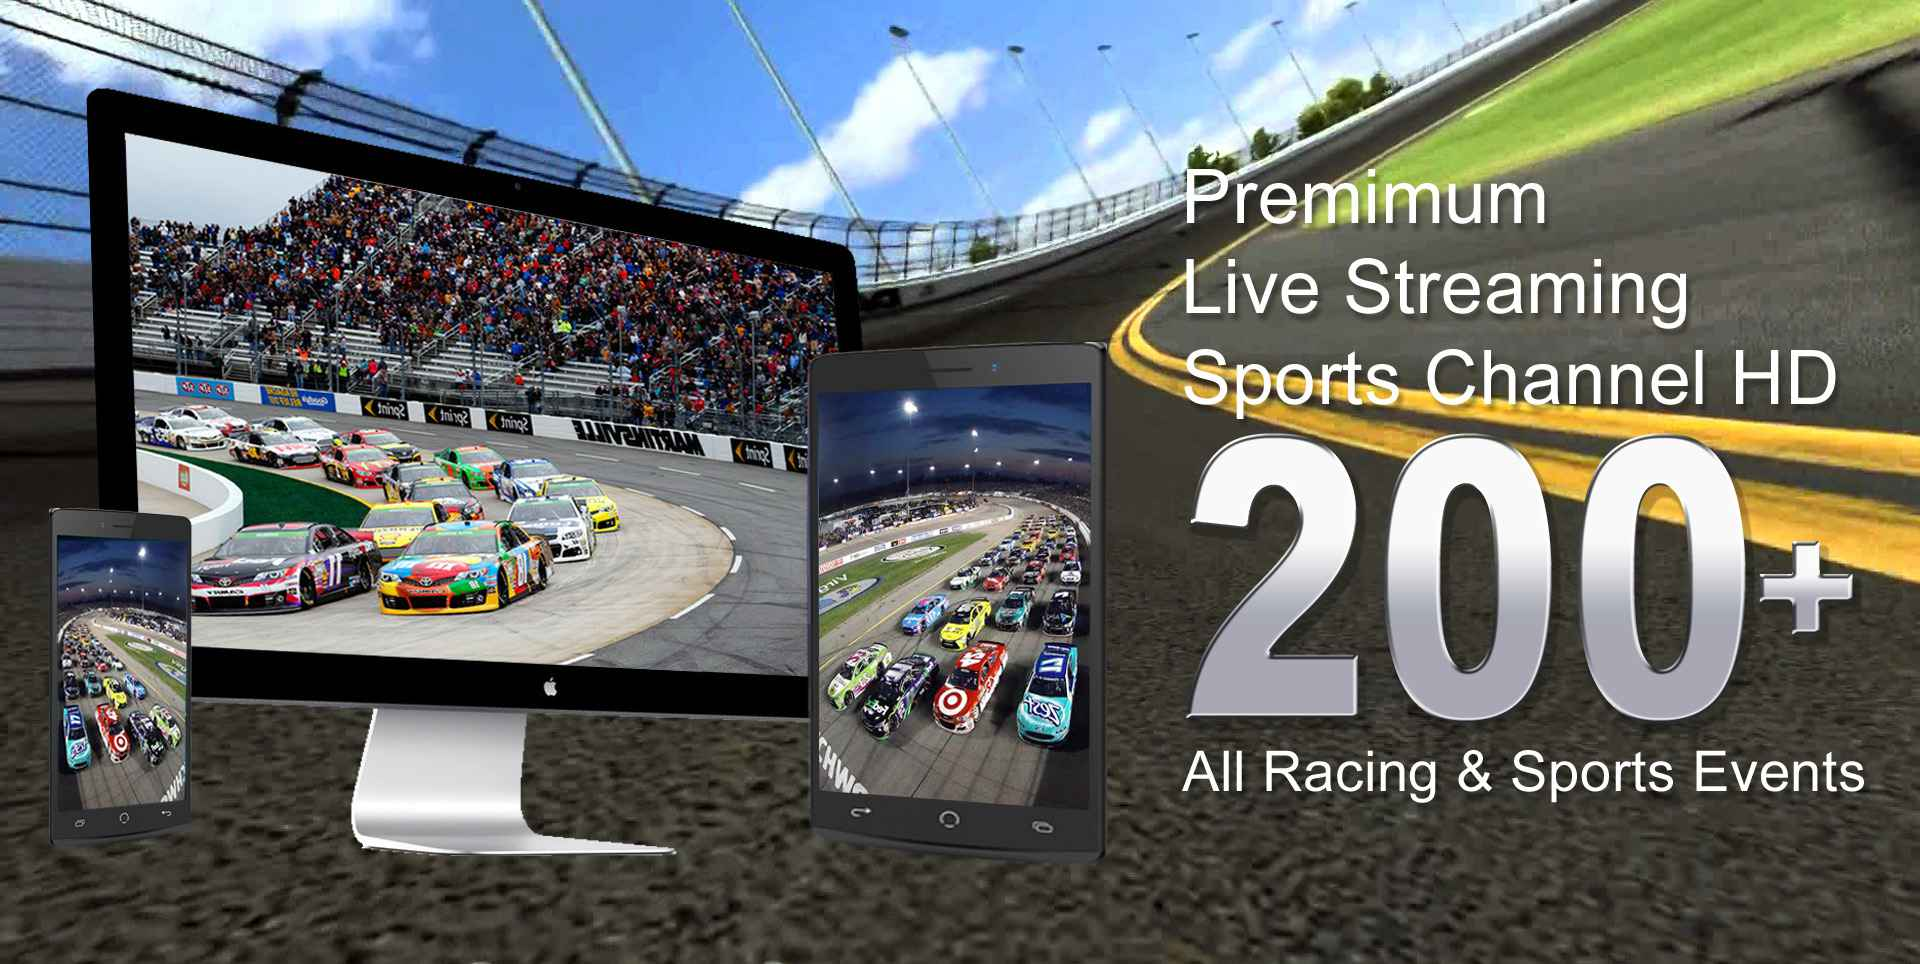 NASCAR Sprint Cup Series at Bristol